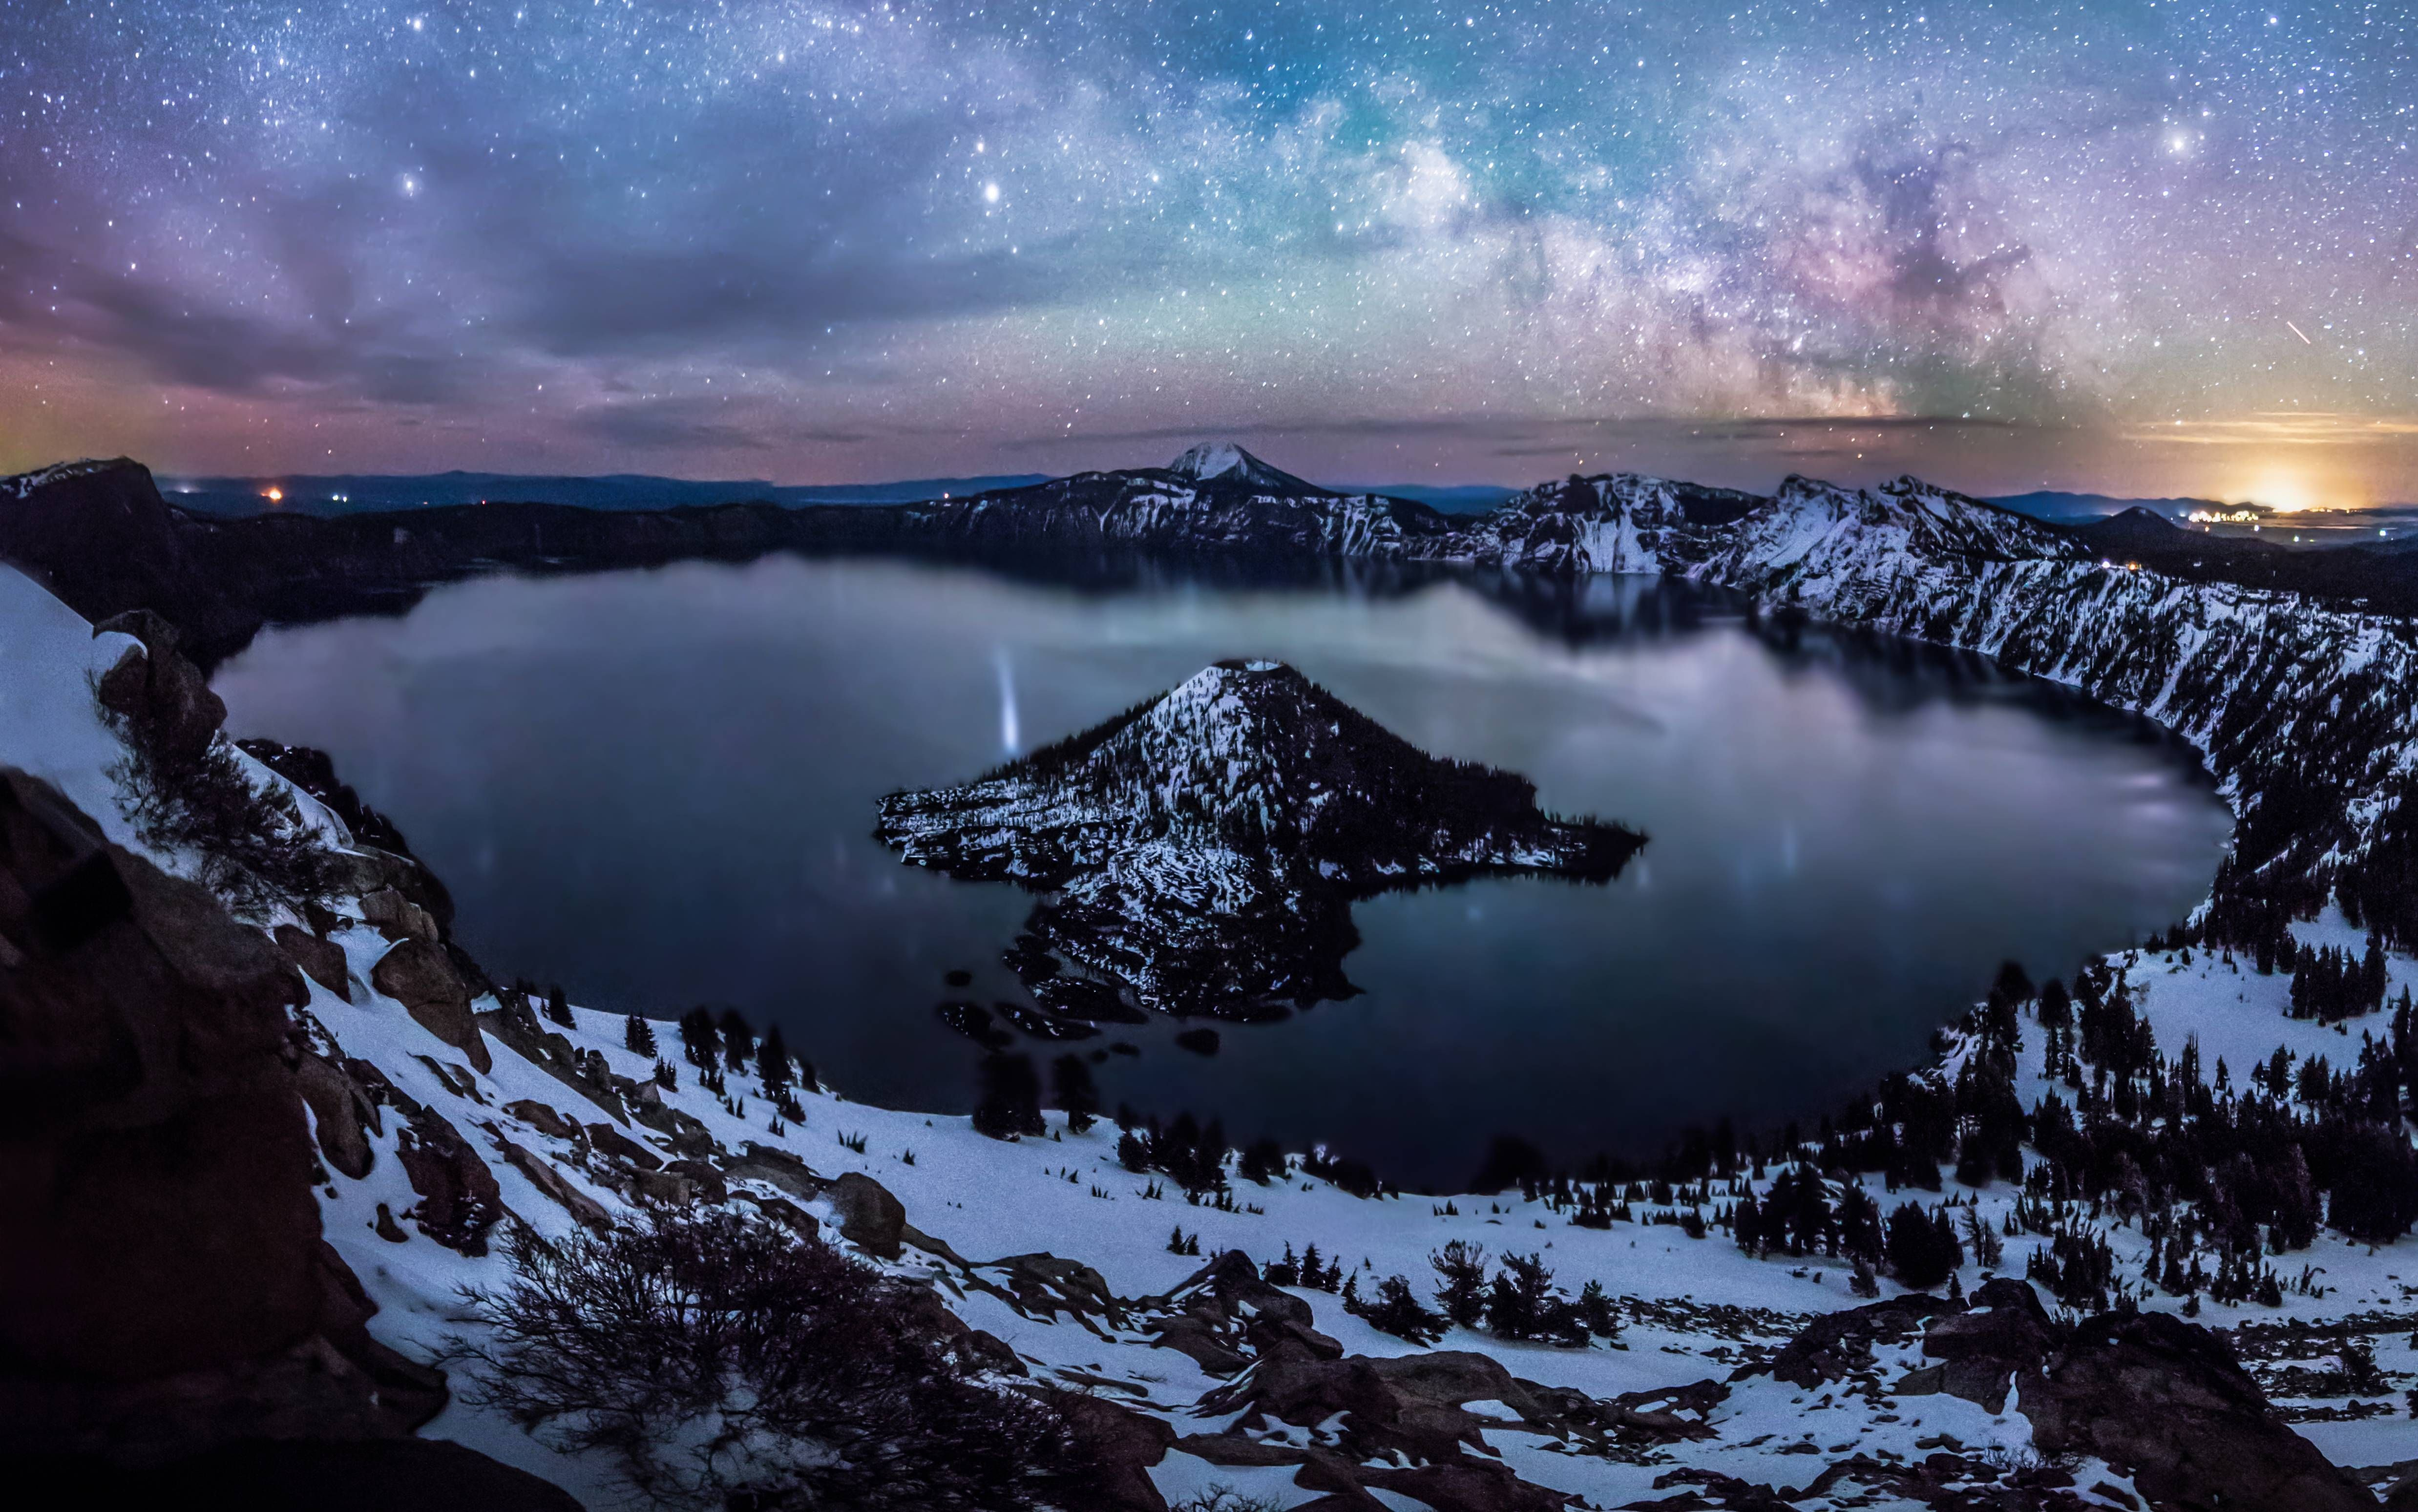 Crater Lake with northern lights and milkyway #craterlakeoregon Northern Lights + Milkyway + Crater Lake, Oregon taken by @studercinema #craterlakeoregon